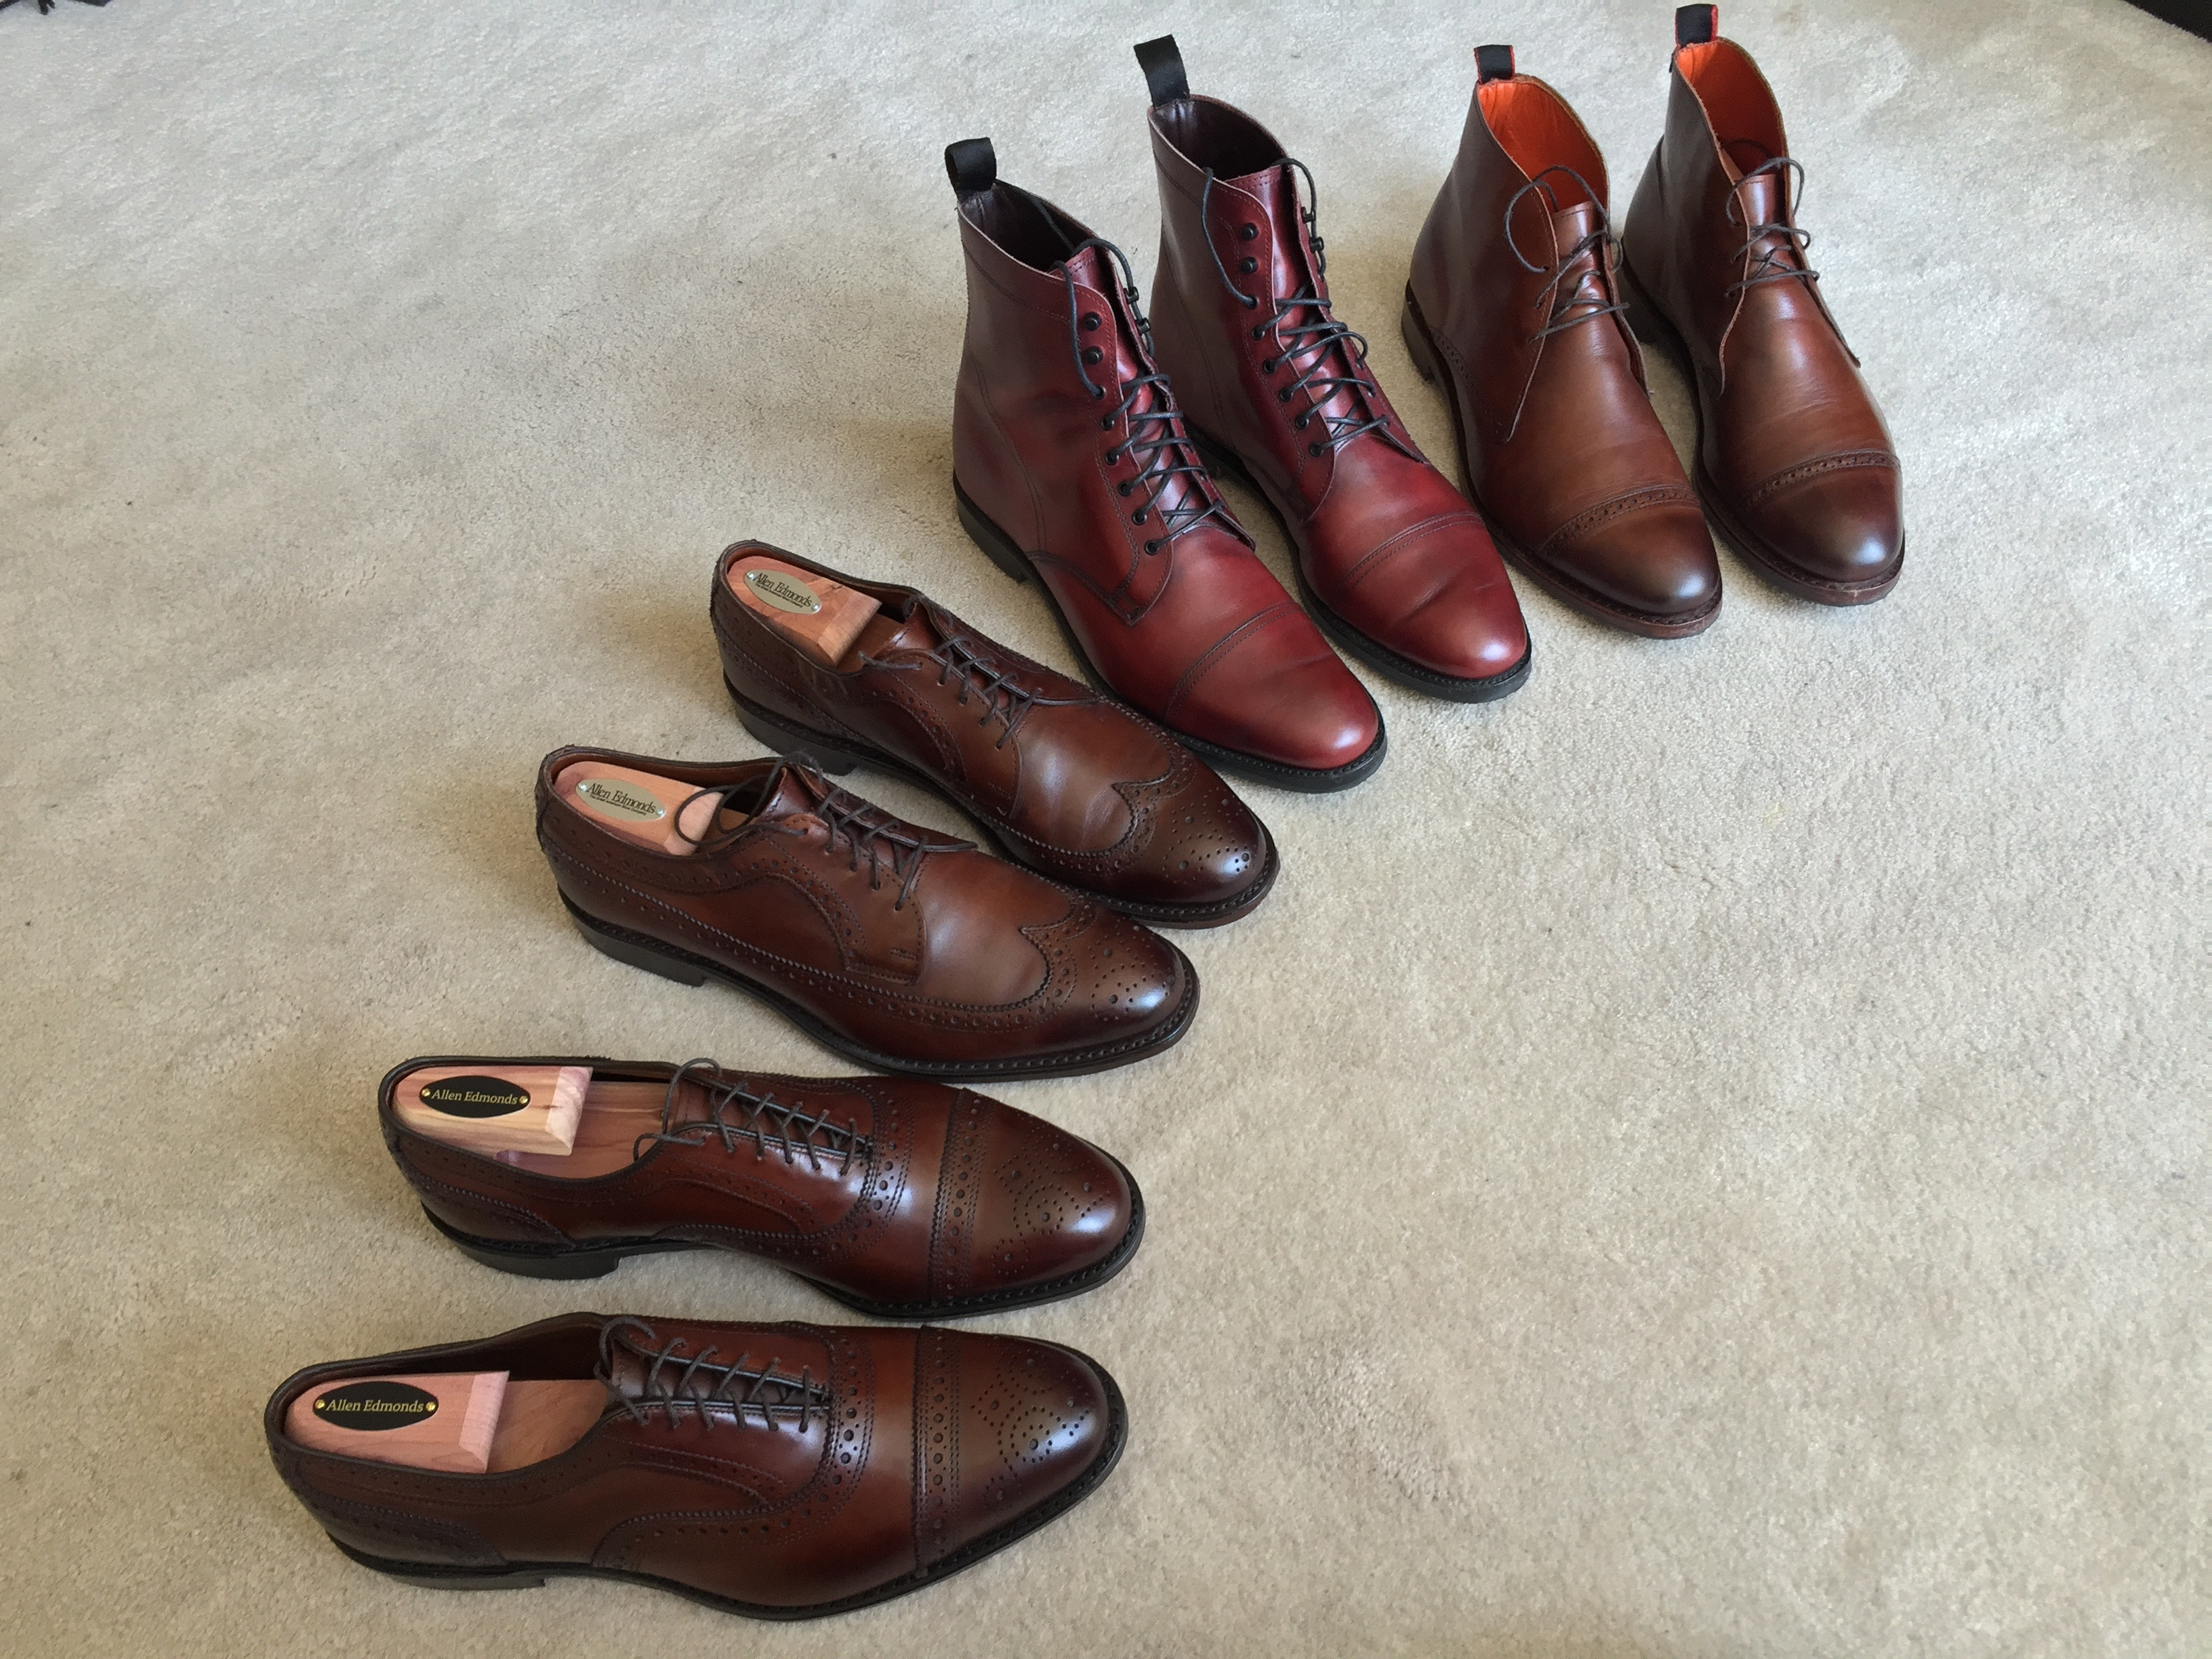 tietherope's photos in Allen Edmonds Appreciation Thread 2016 - News, Pictures, Sizing, Accessories, Clothing, etc